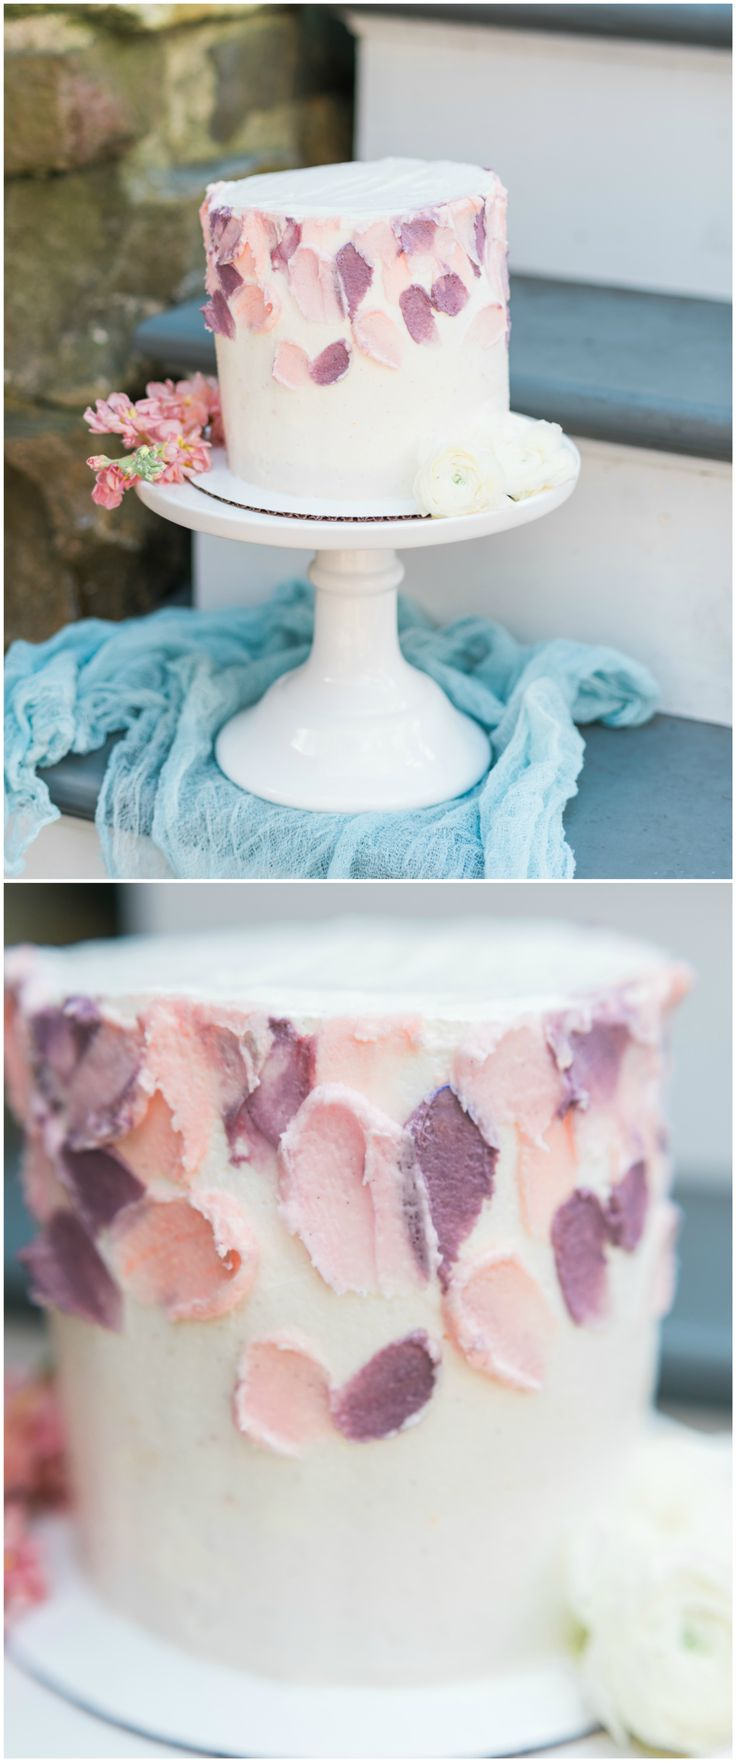 Petite wedding cake, white buttercream, pastel pink and purple // Rae Marshall Photography